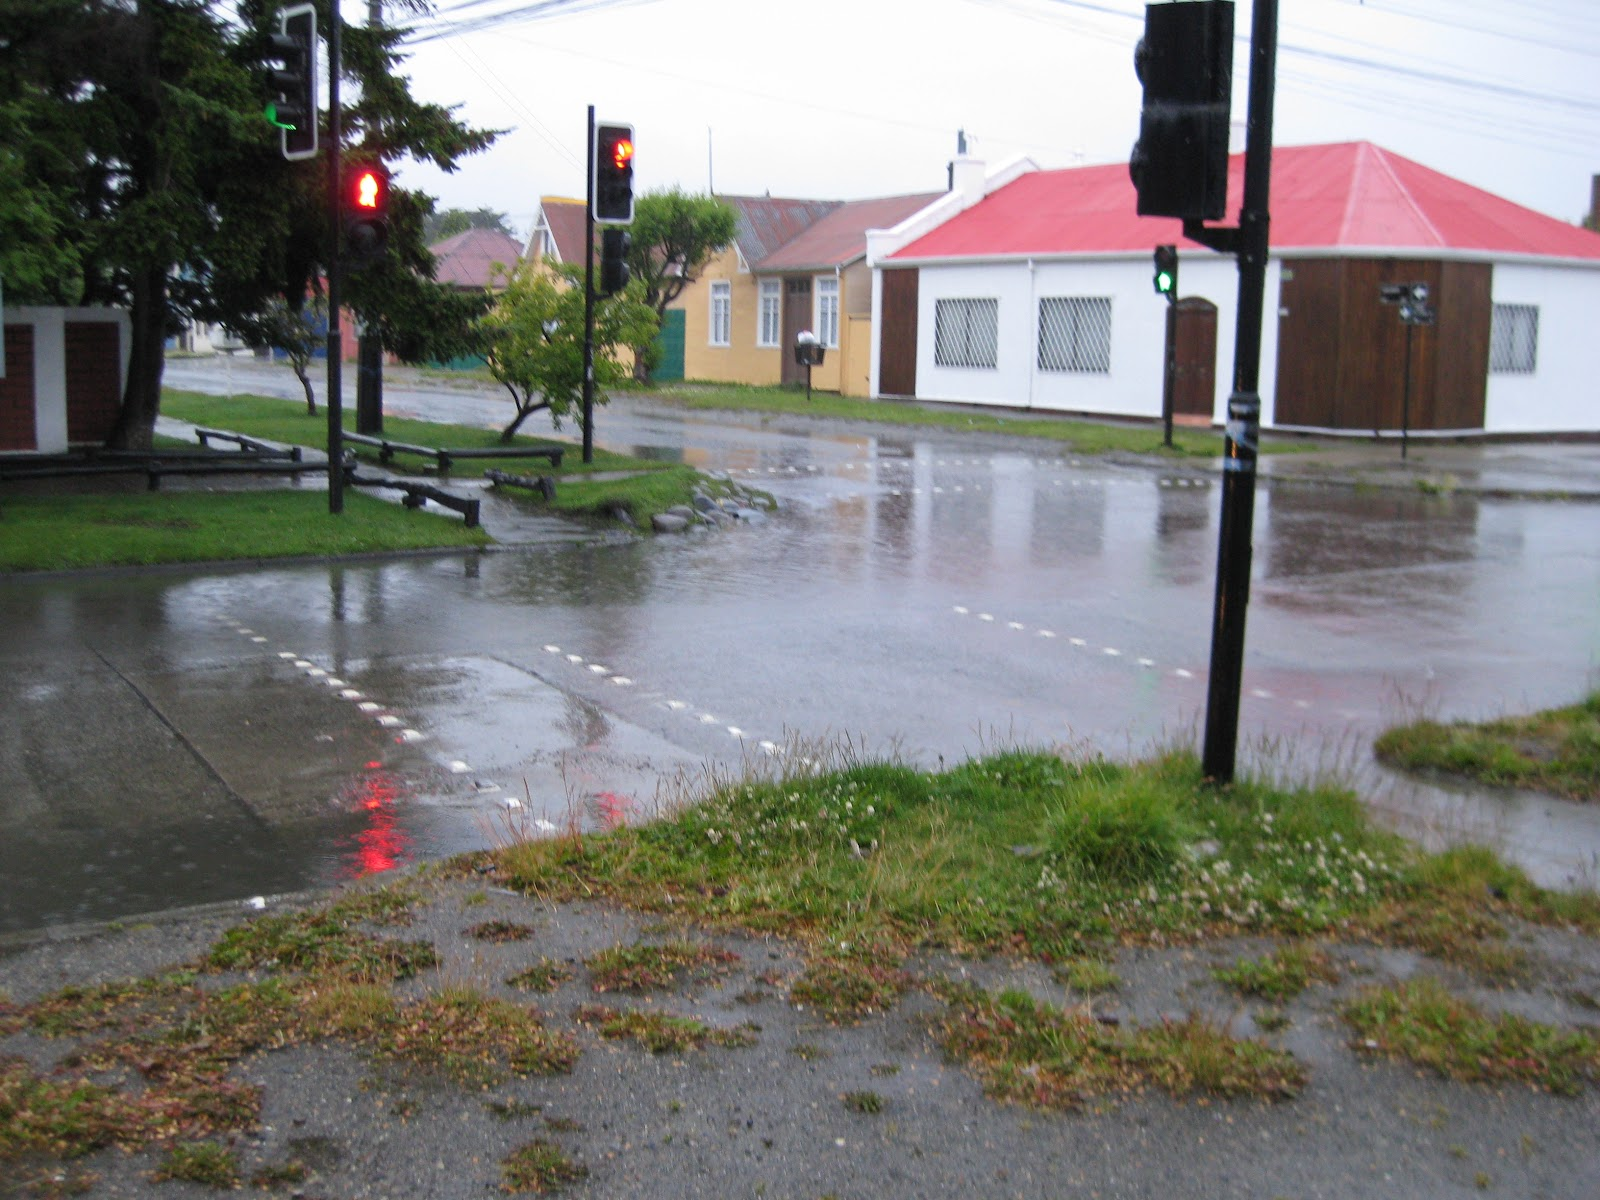 No stormwater drains, in spite of the rain